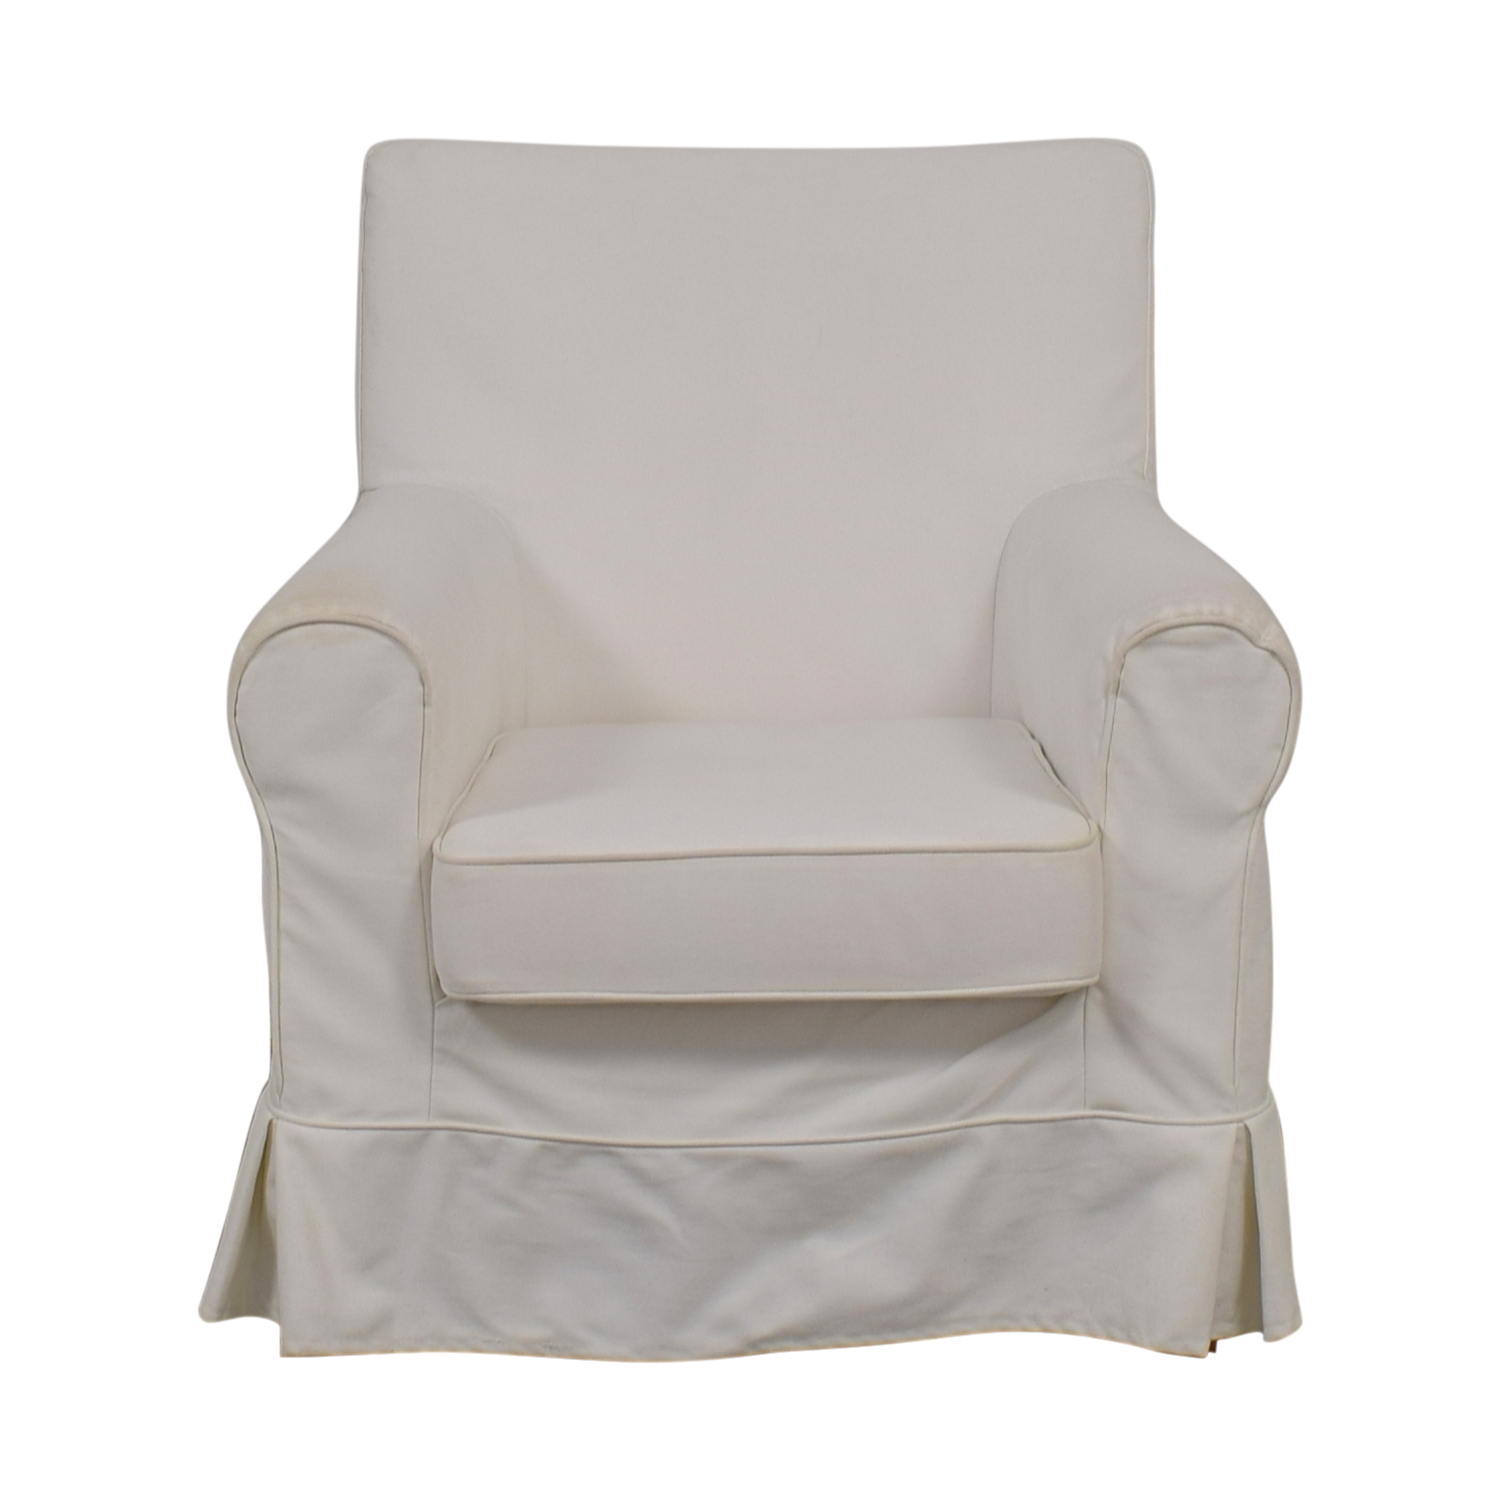 90 Off Ikea Ikea Eltorp Jennylund White Skirted Accent Chair Chairs